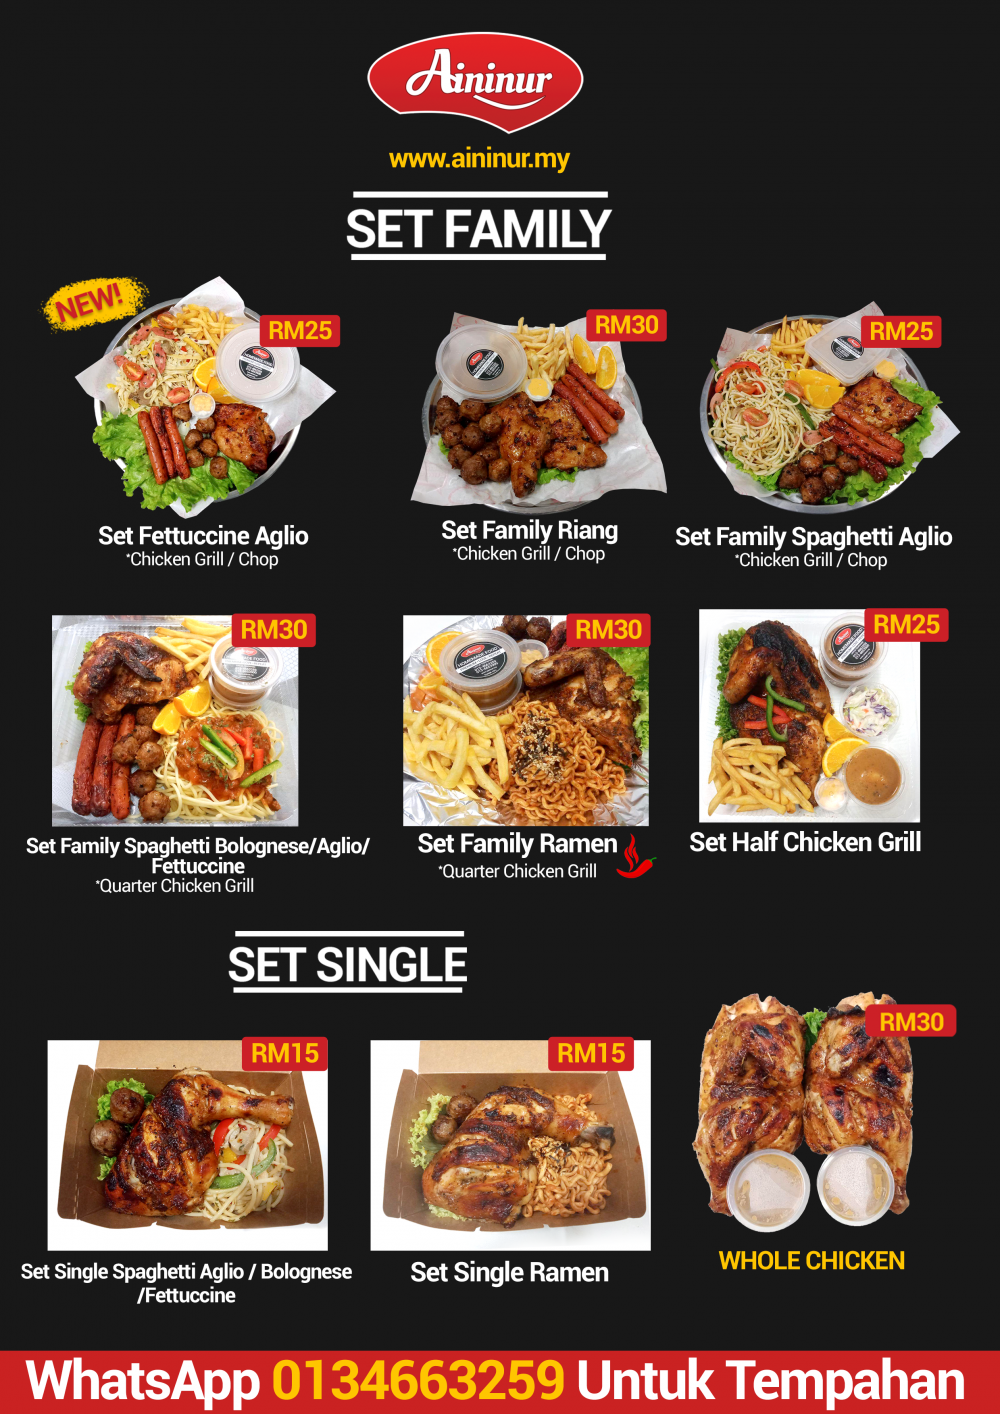 MENU SET FAMILY & SINGLE